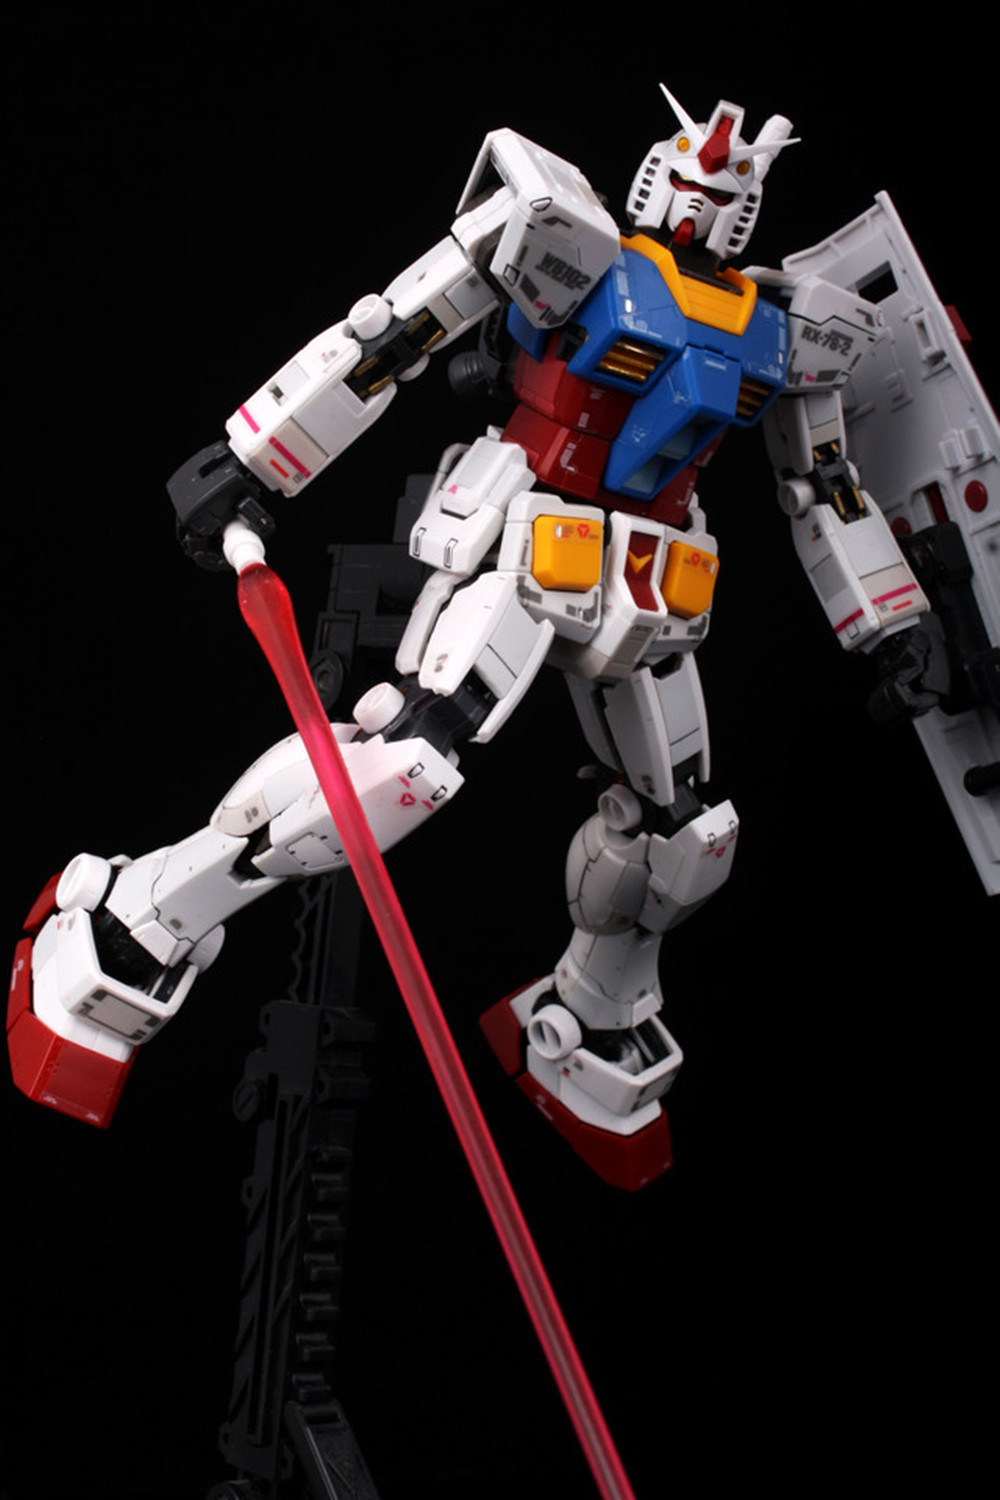 Action Figures Toys Metal Collections For RX-78-2 3D Metal Puzzle GUNDAM MIni DIY Laser Cut Puzzles Jigsaw